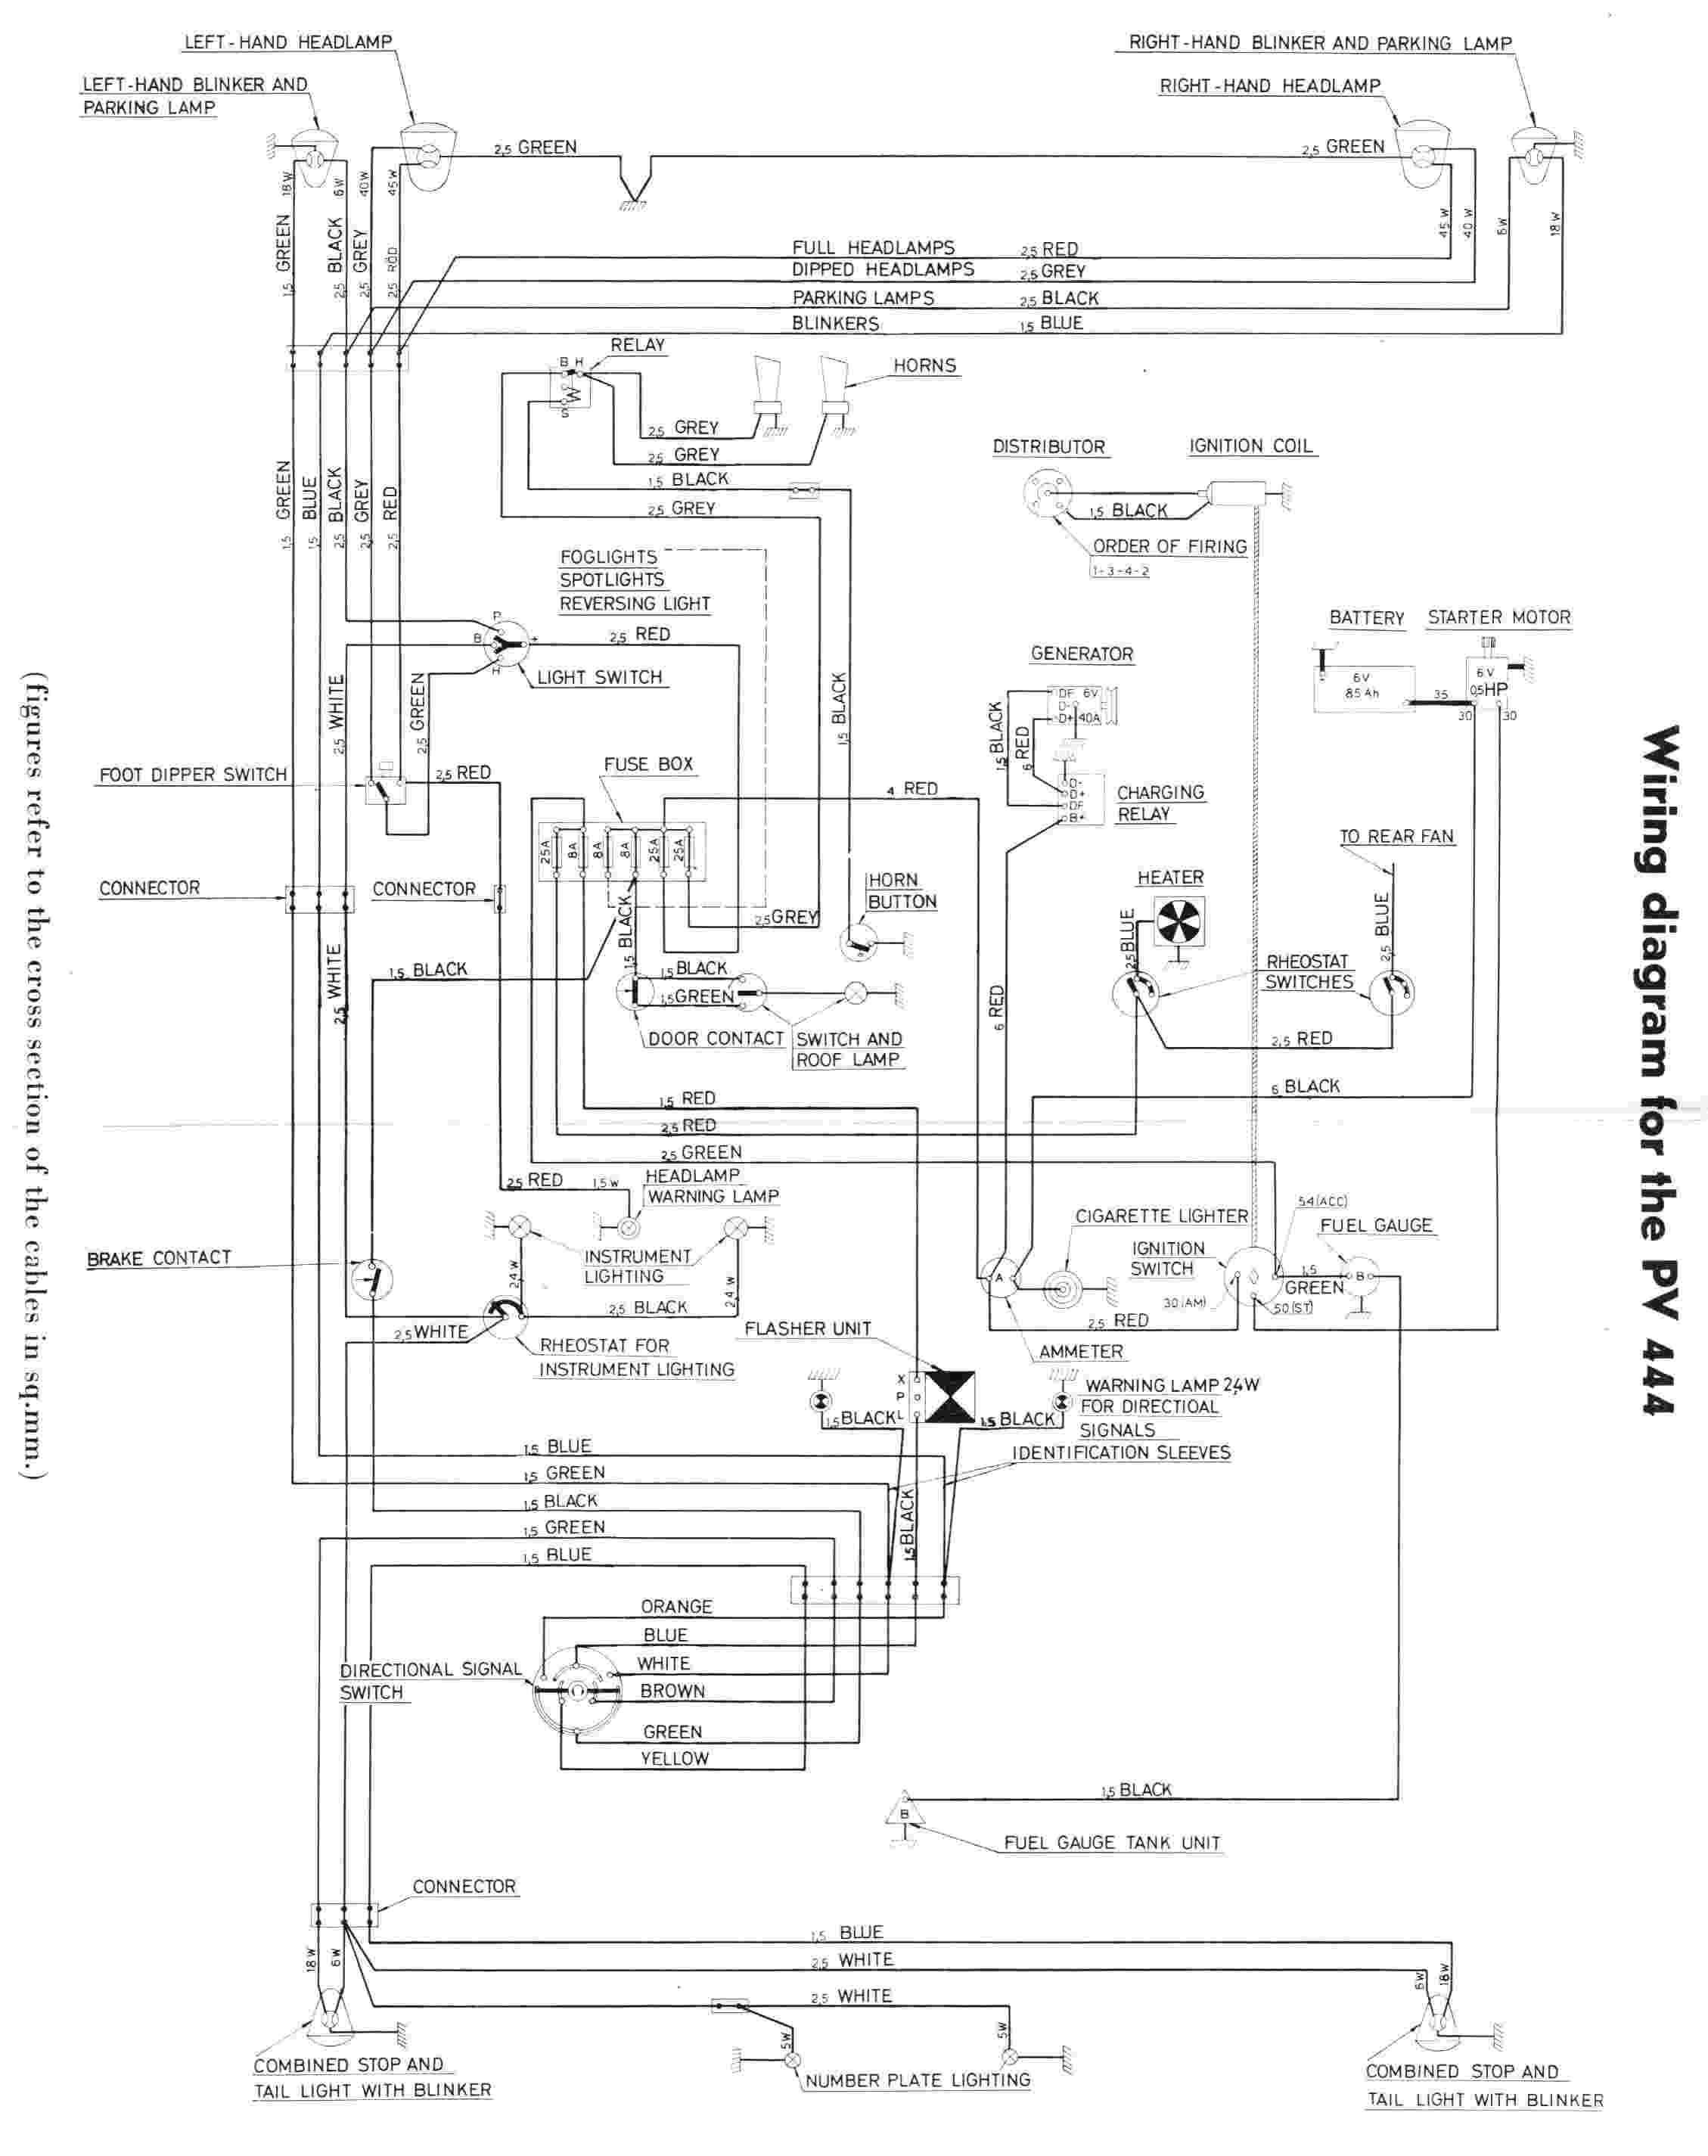 volvo truck wiring schematic 1993 auto electrical wiring diagram u2022 rh 6weeks co uk